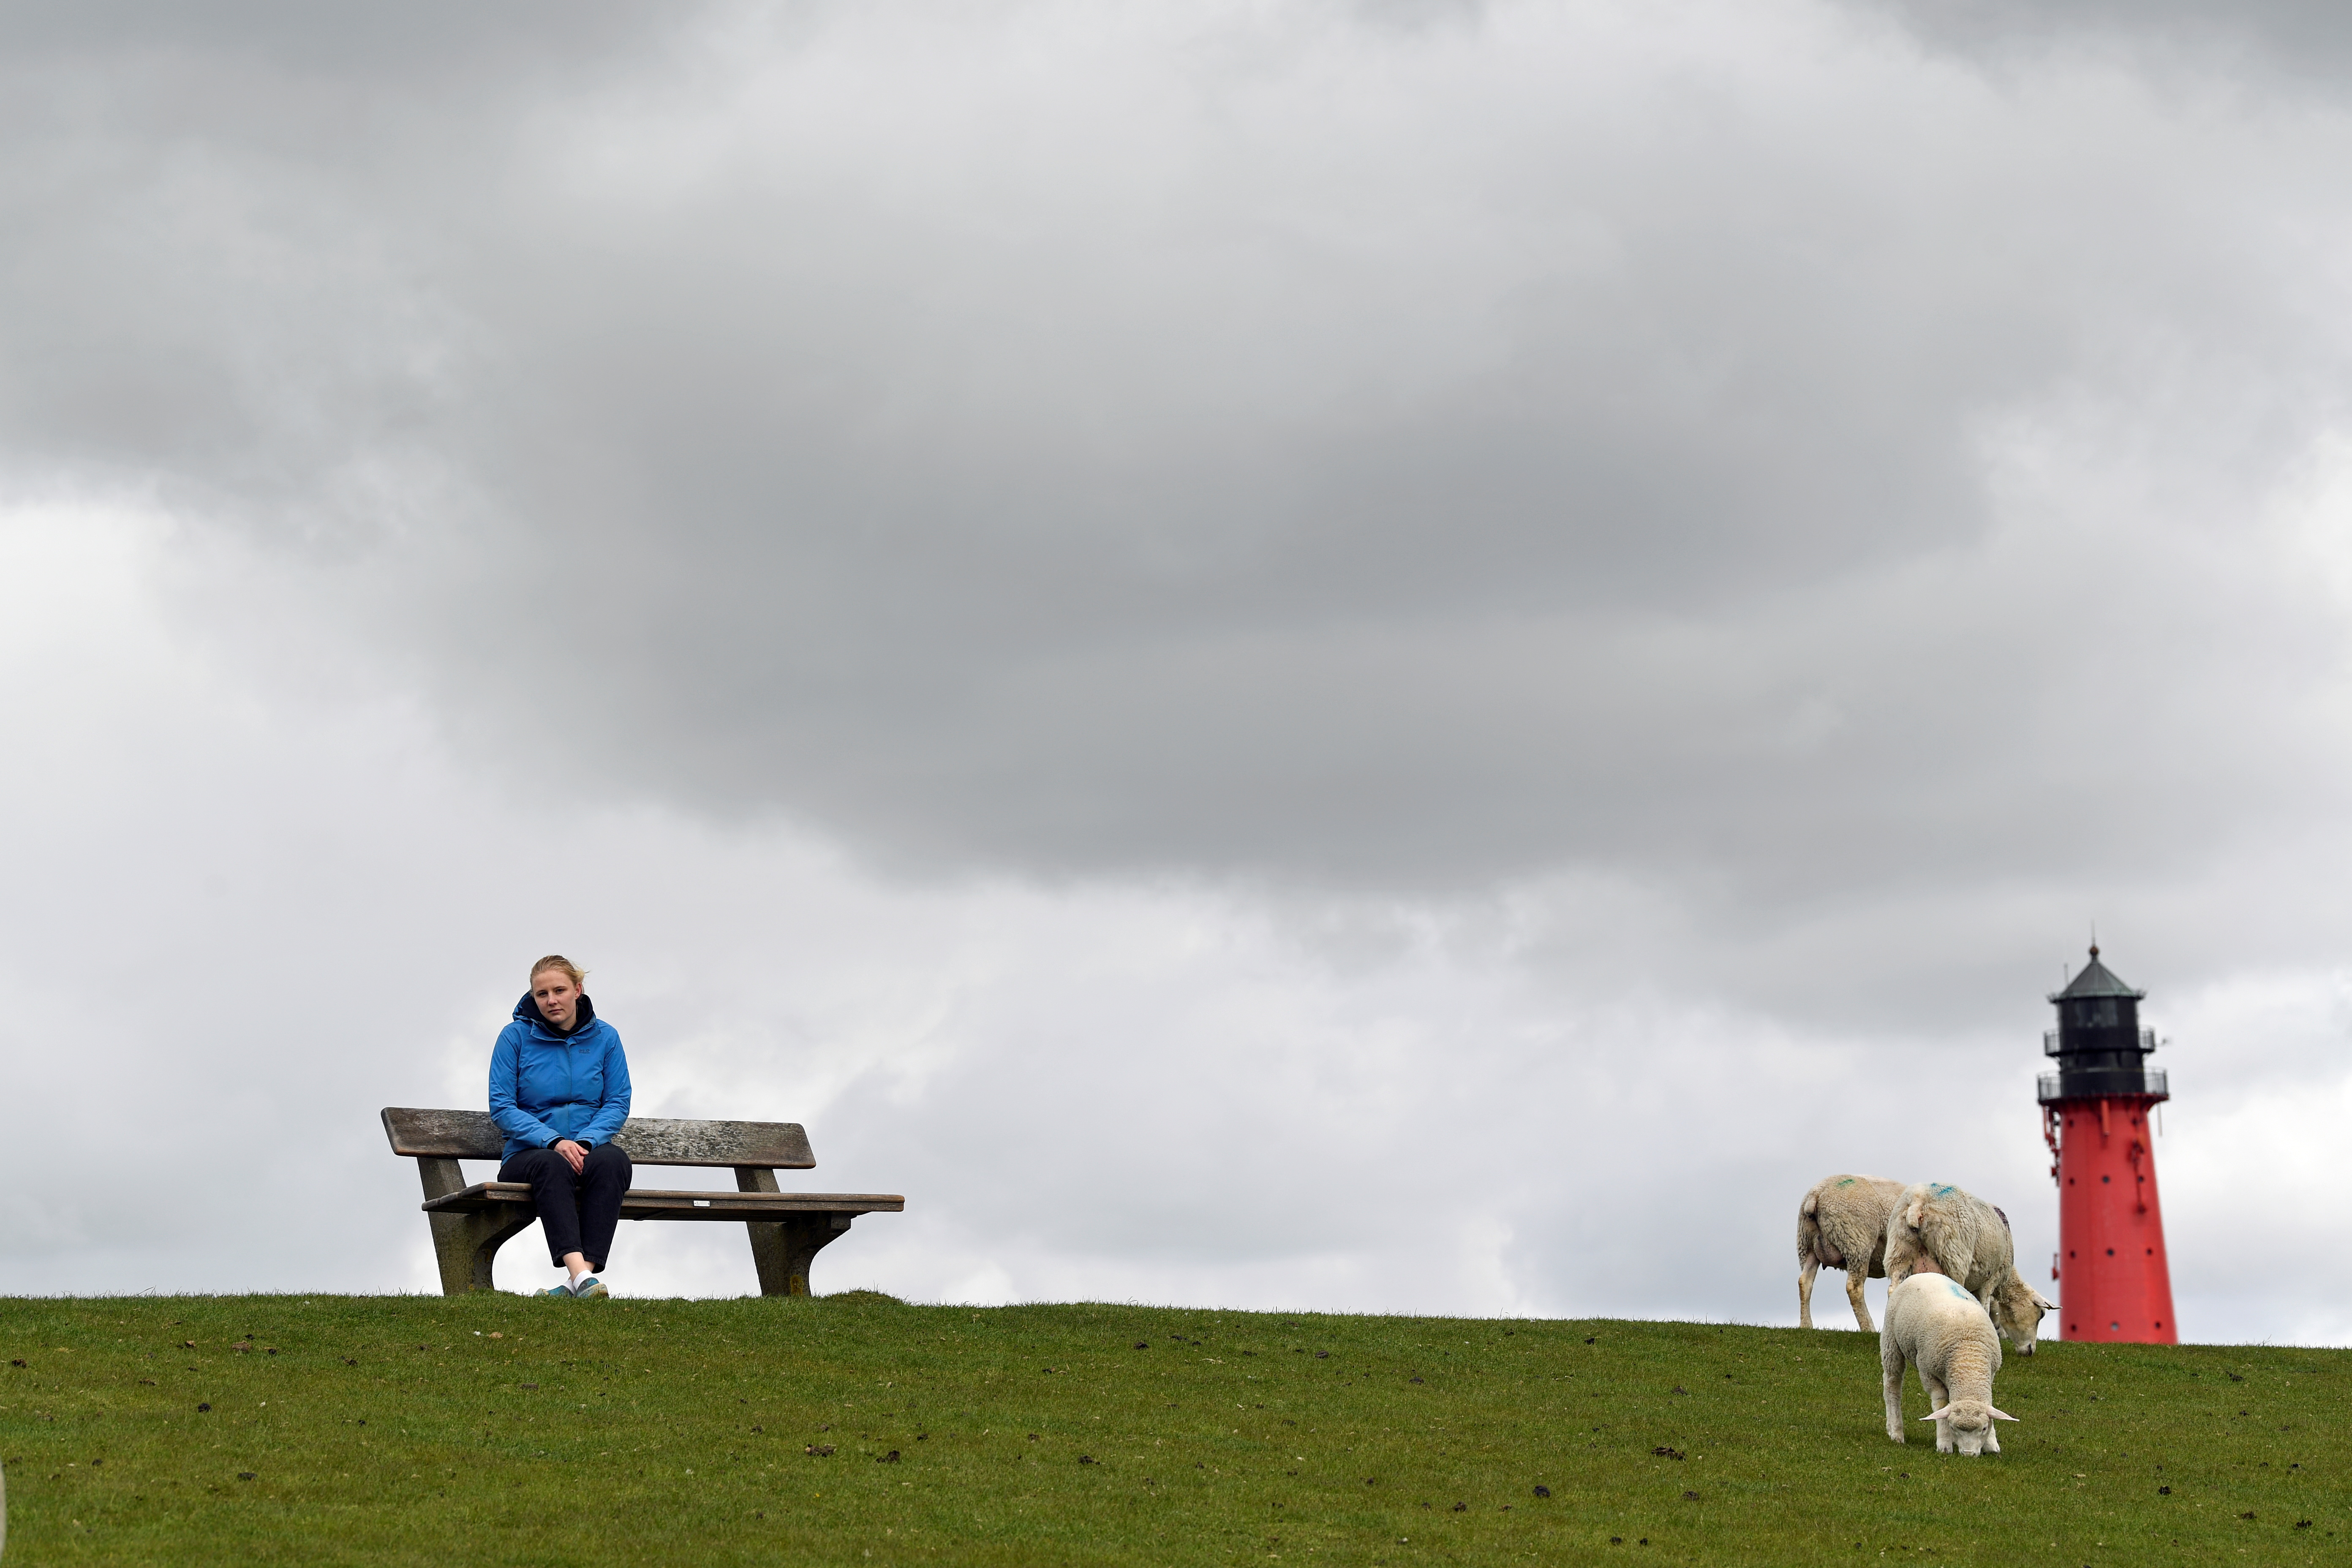 Sophie Backsen, 22, daughter of a farming family, which forced Germany by court to tighten its climate law, sits on a dyke on the North Sea island of Pellworm, Germany May 3, 2021. Picture taken May 3, 2021. REUTERS/Fabian Bimmer